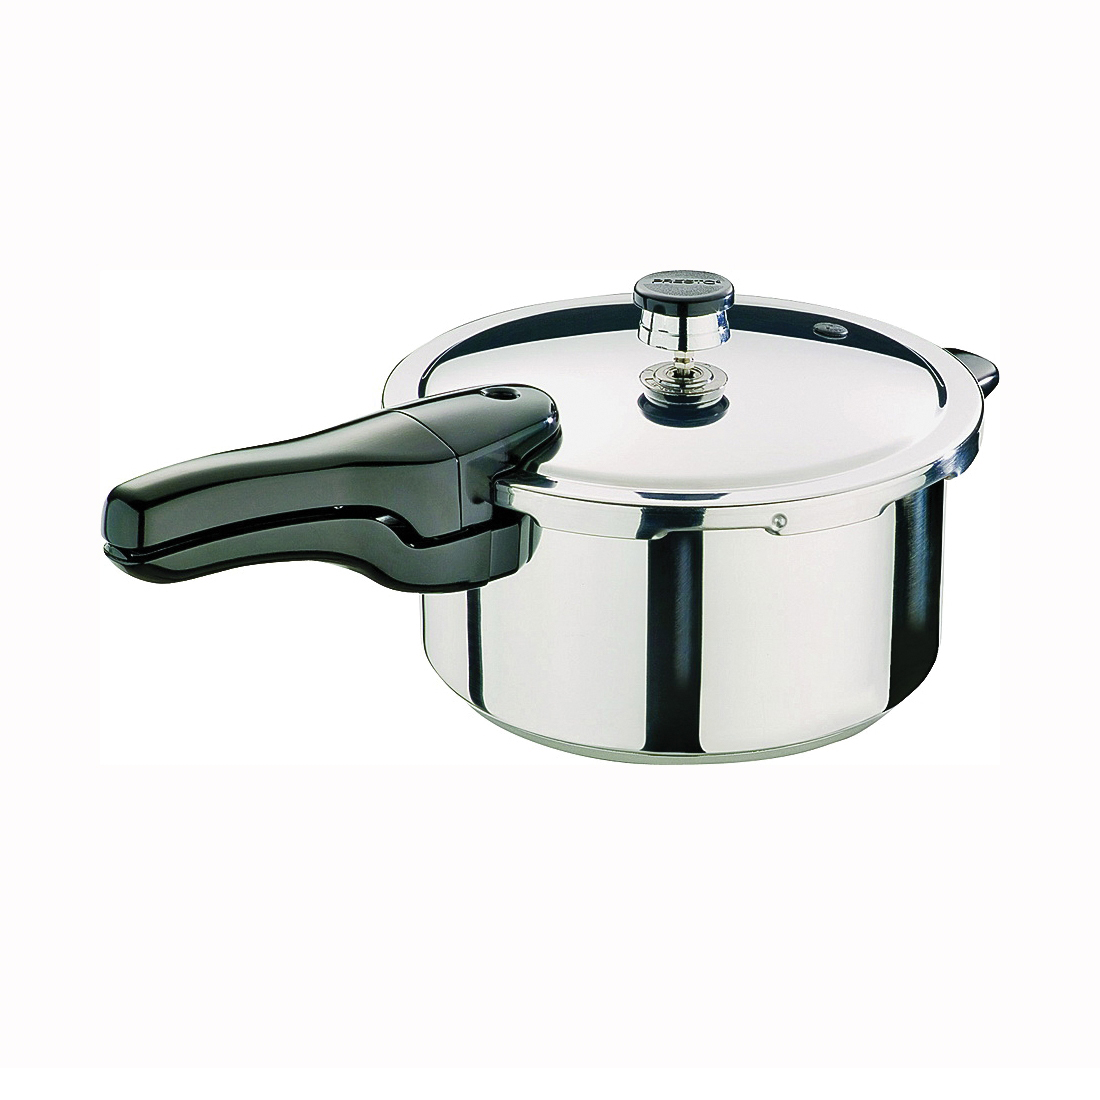 Picture of Presto 01341 Pressure Cooker, 4 qt Capacity, 10-1/2 in Dia, Stainless Steel